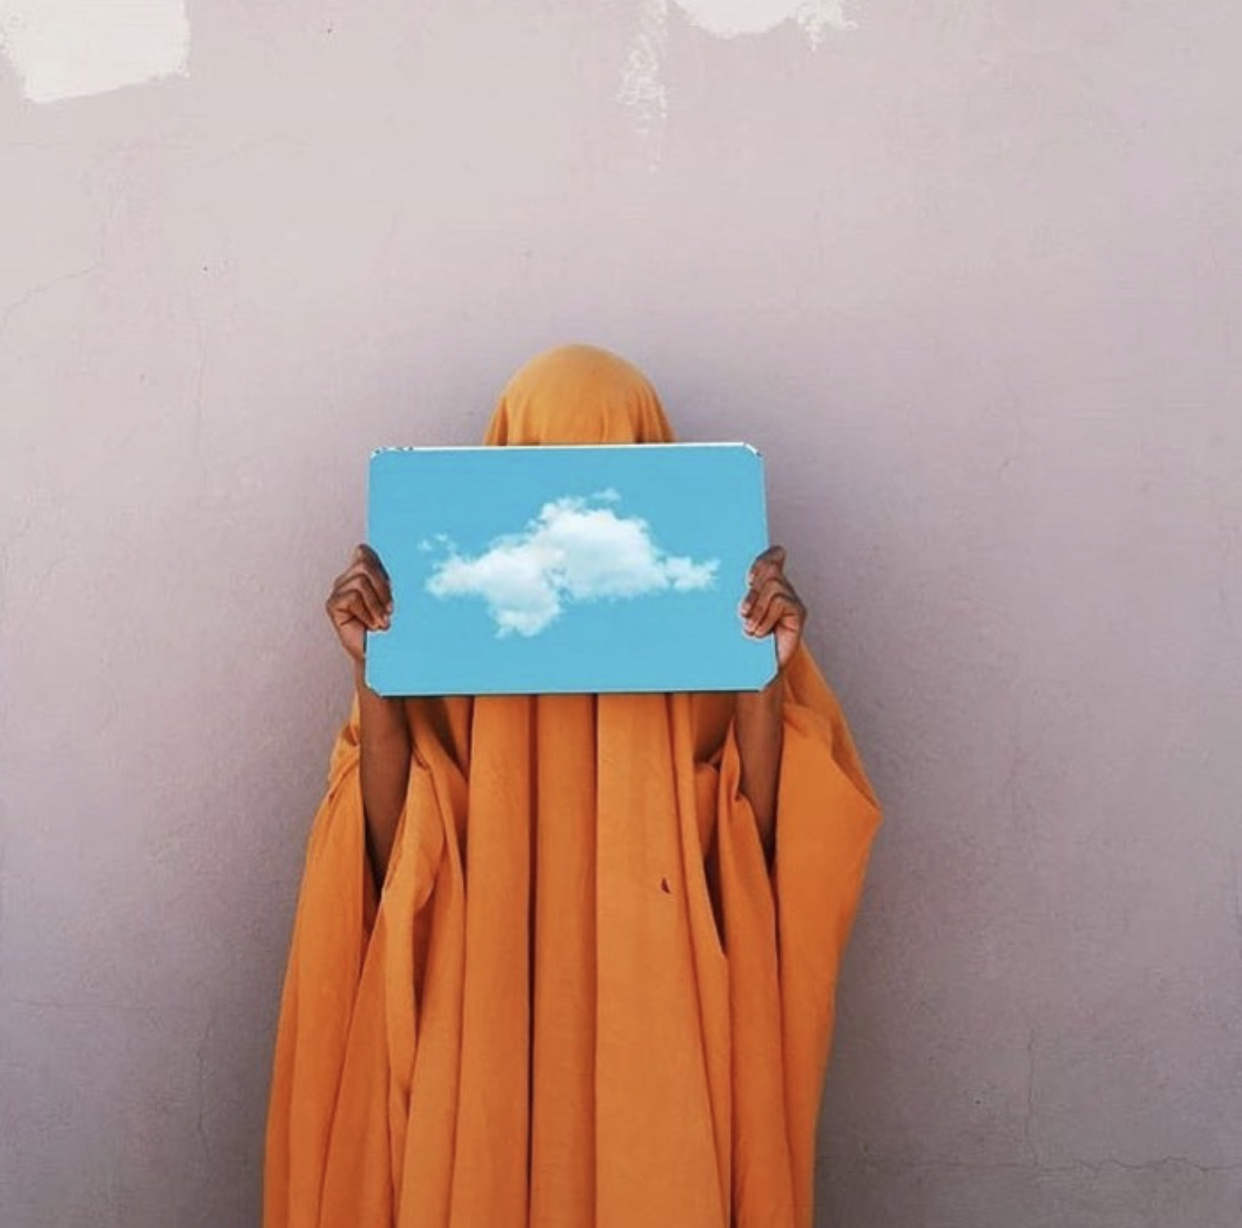 An image that inspired me by @I4artiste in Morocco